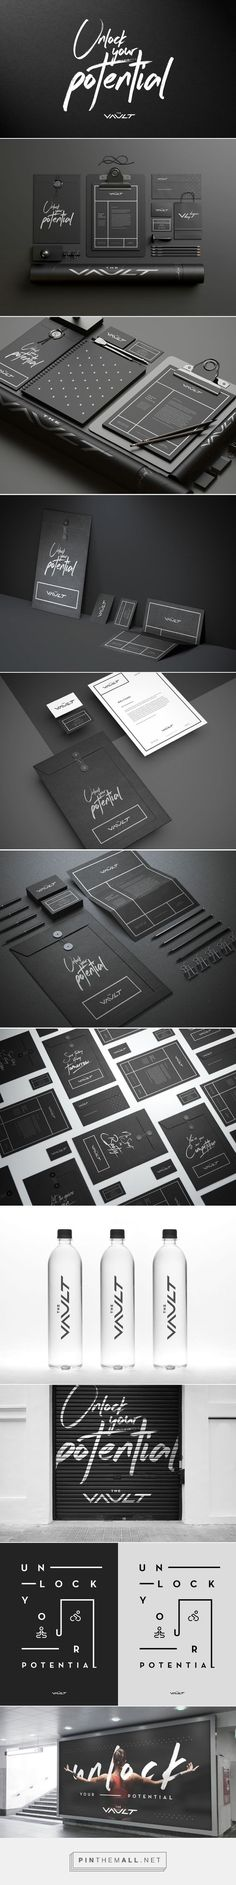 The Vault Branding on Behance